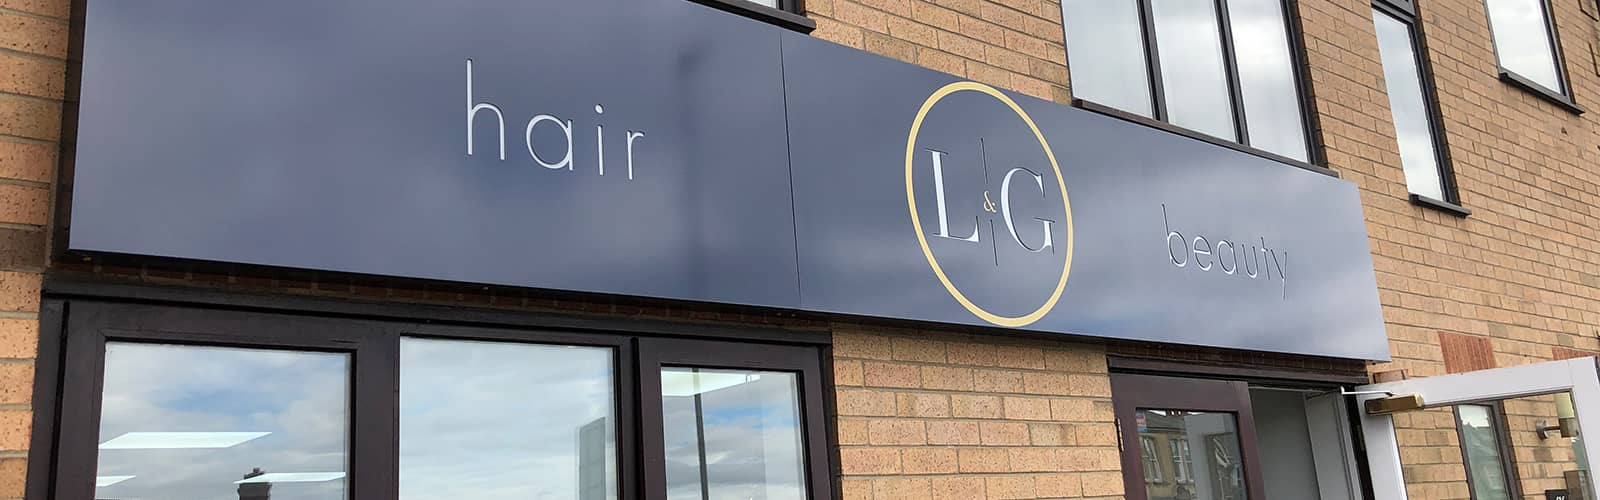 Understand what you are looking for in a sign supplier